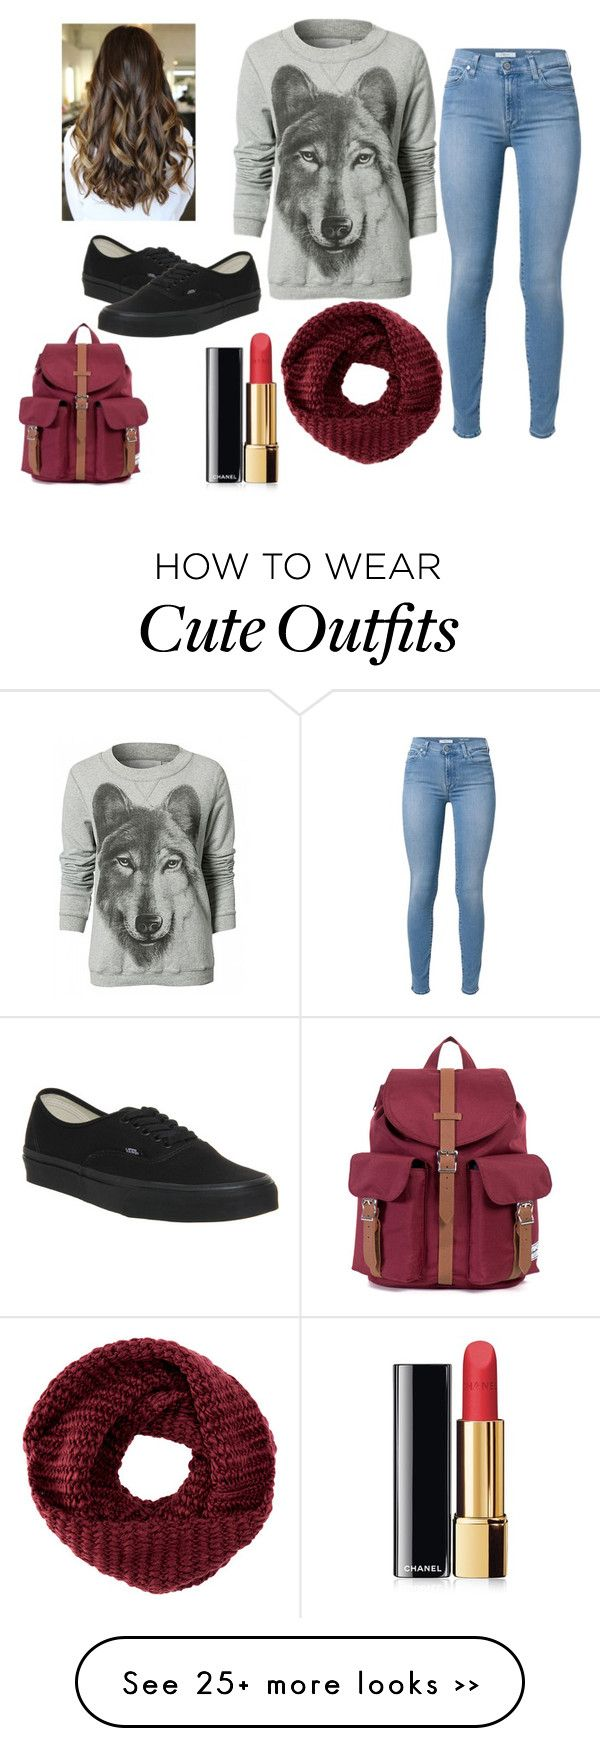 """Cute school outfit idea !"" by kamilla-fyle on Polyvore featuring 7 For All Mankind, TOMS, Chanel, Vans and Herschel"